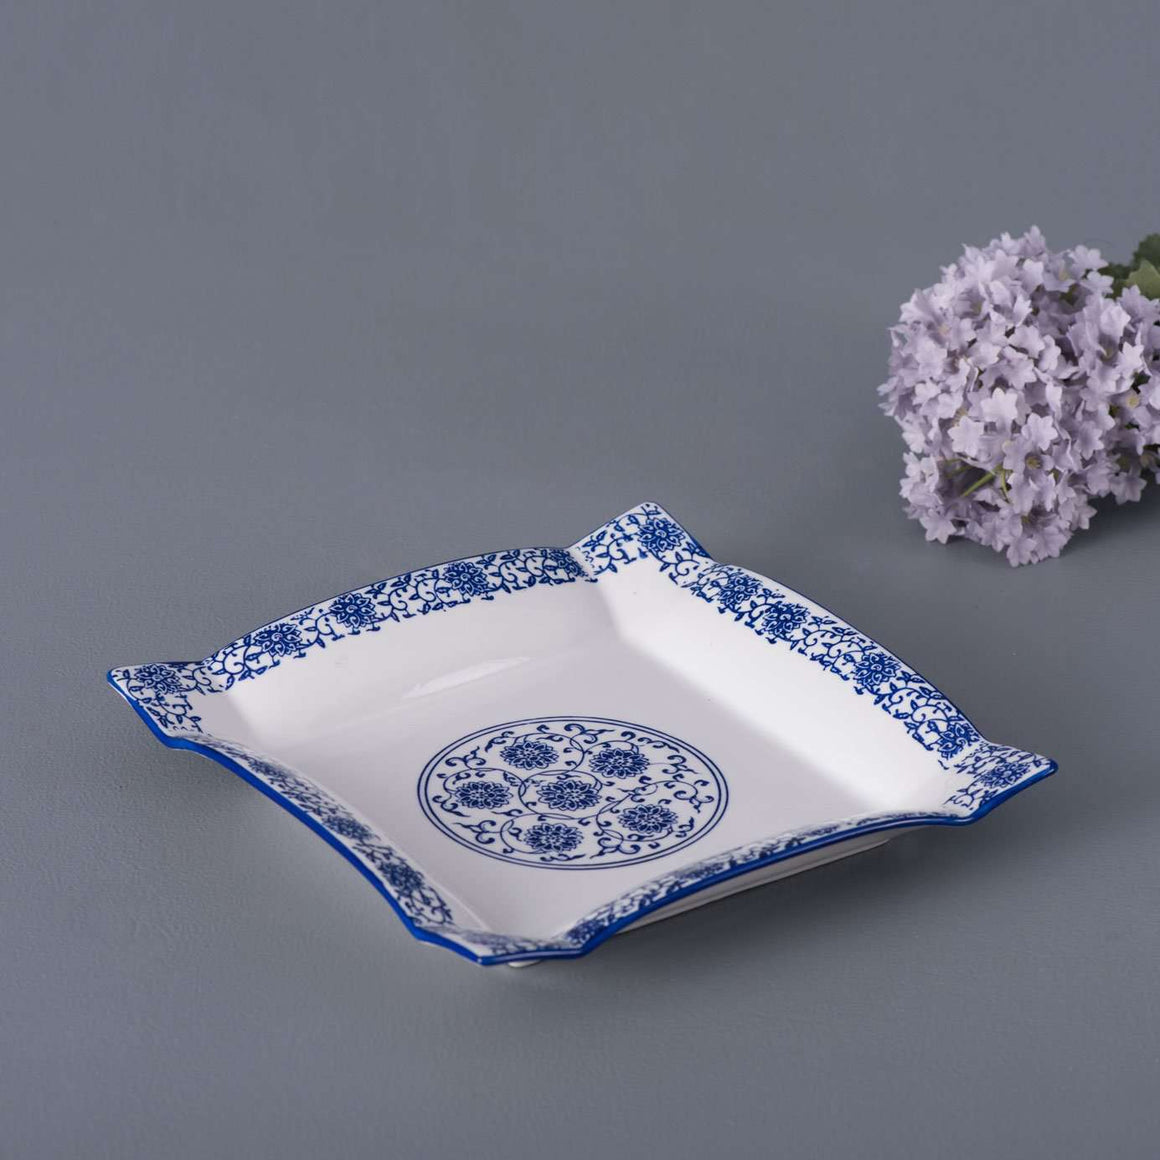 Vintage Blue and White Square Dinner Plate - 9.5""